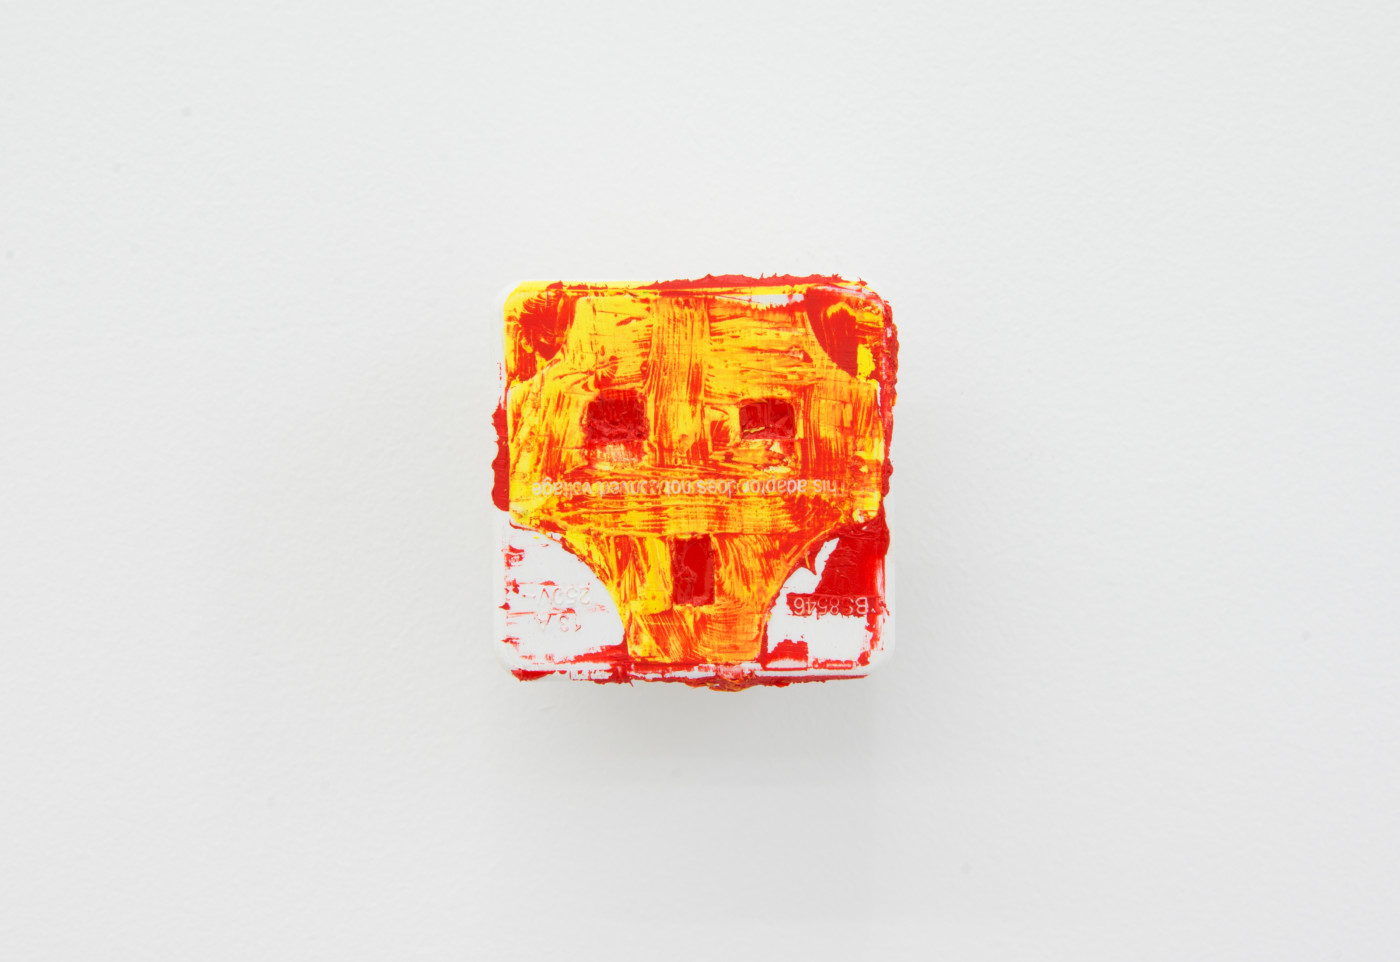 THE REAL REAL MARIGOLD HOTEL  Scream #8</I>, 2019 Oil on travel adaptor 6 x 6 x 4,6 cm / 2.3 x 2.3 x 1.8 in  KEITH FARQUHAR